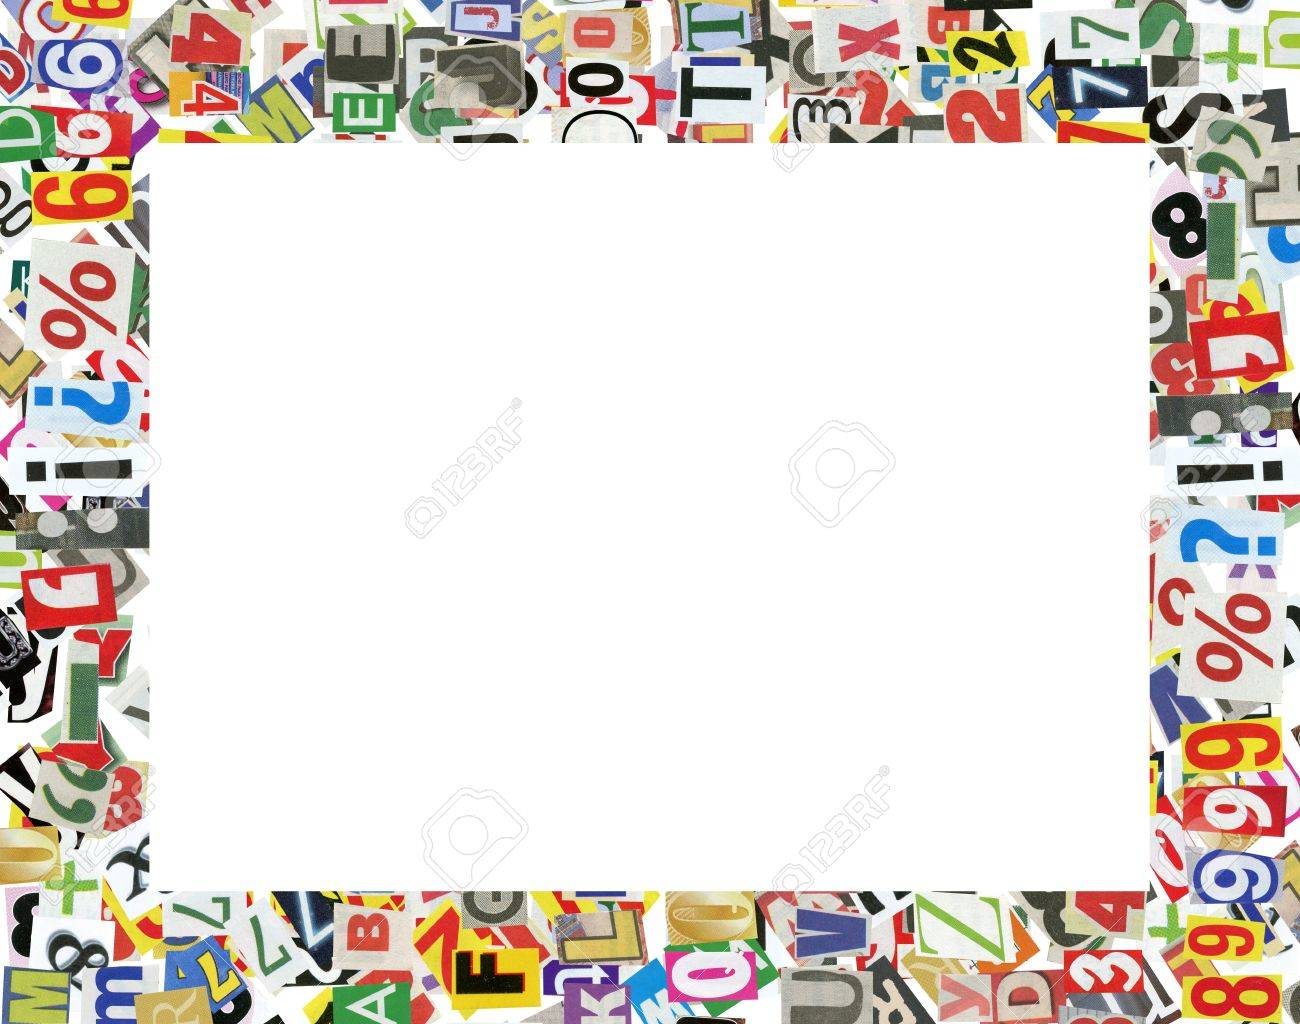 picture frame made of newspaper letters numbers and punctuation marks isolated on white